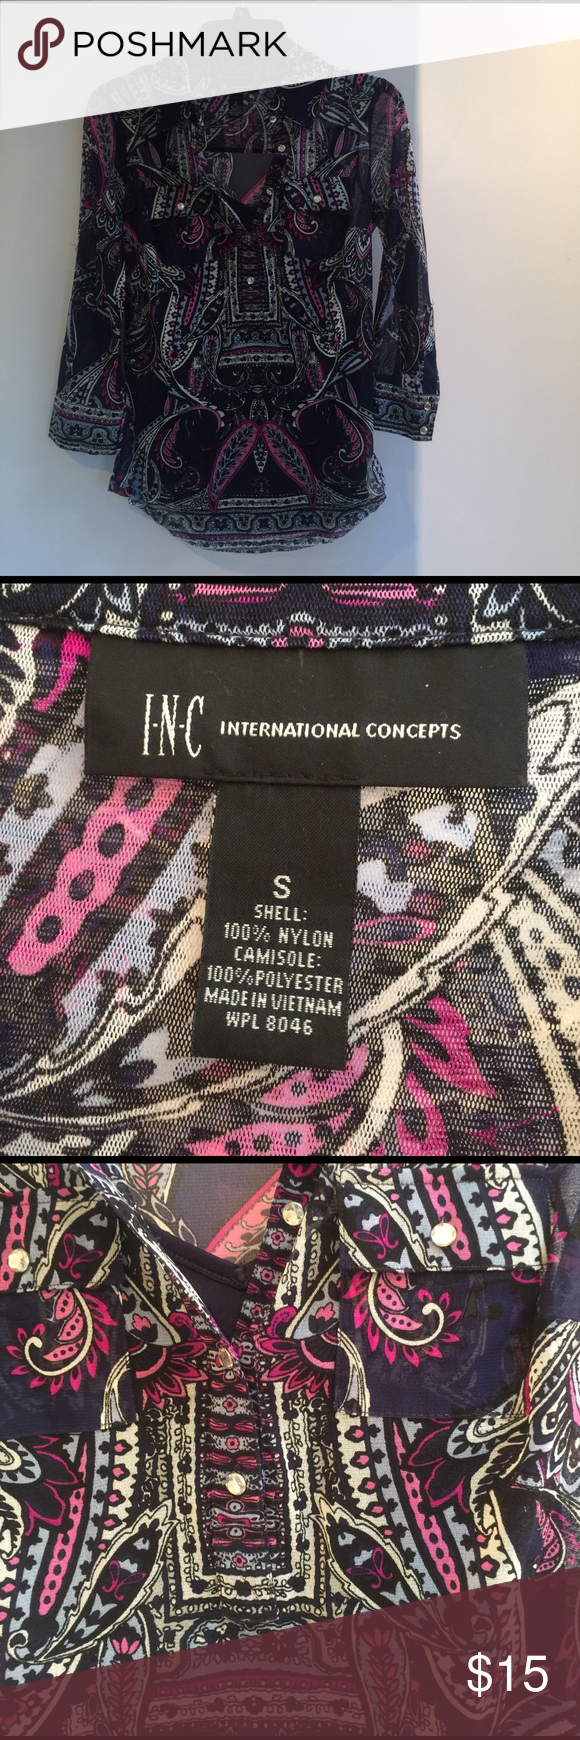 INC camisole and see thru patterned shirt Hardly been worn - fun spring light see thru 3/4 sleeve top with a navy blue camisole underneath. Can be securely attached from inside. INC International Concepts Tops Button Down Shirts